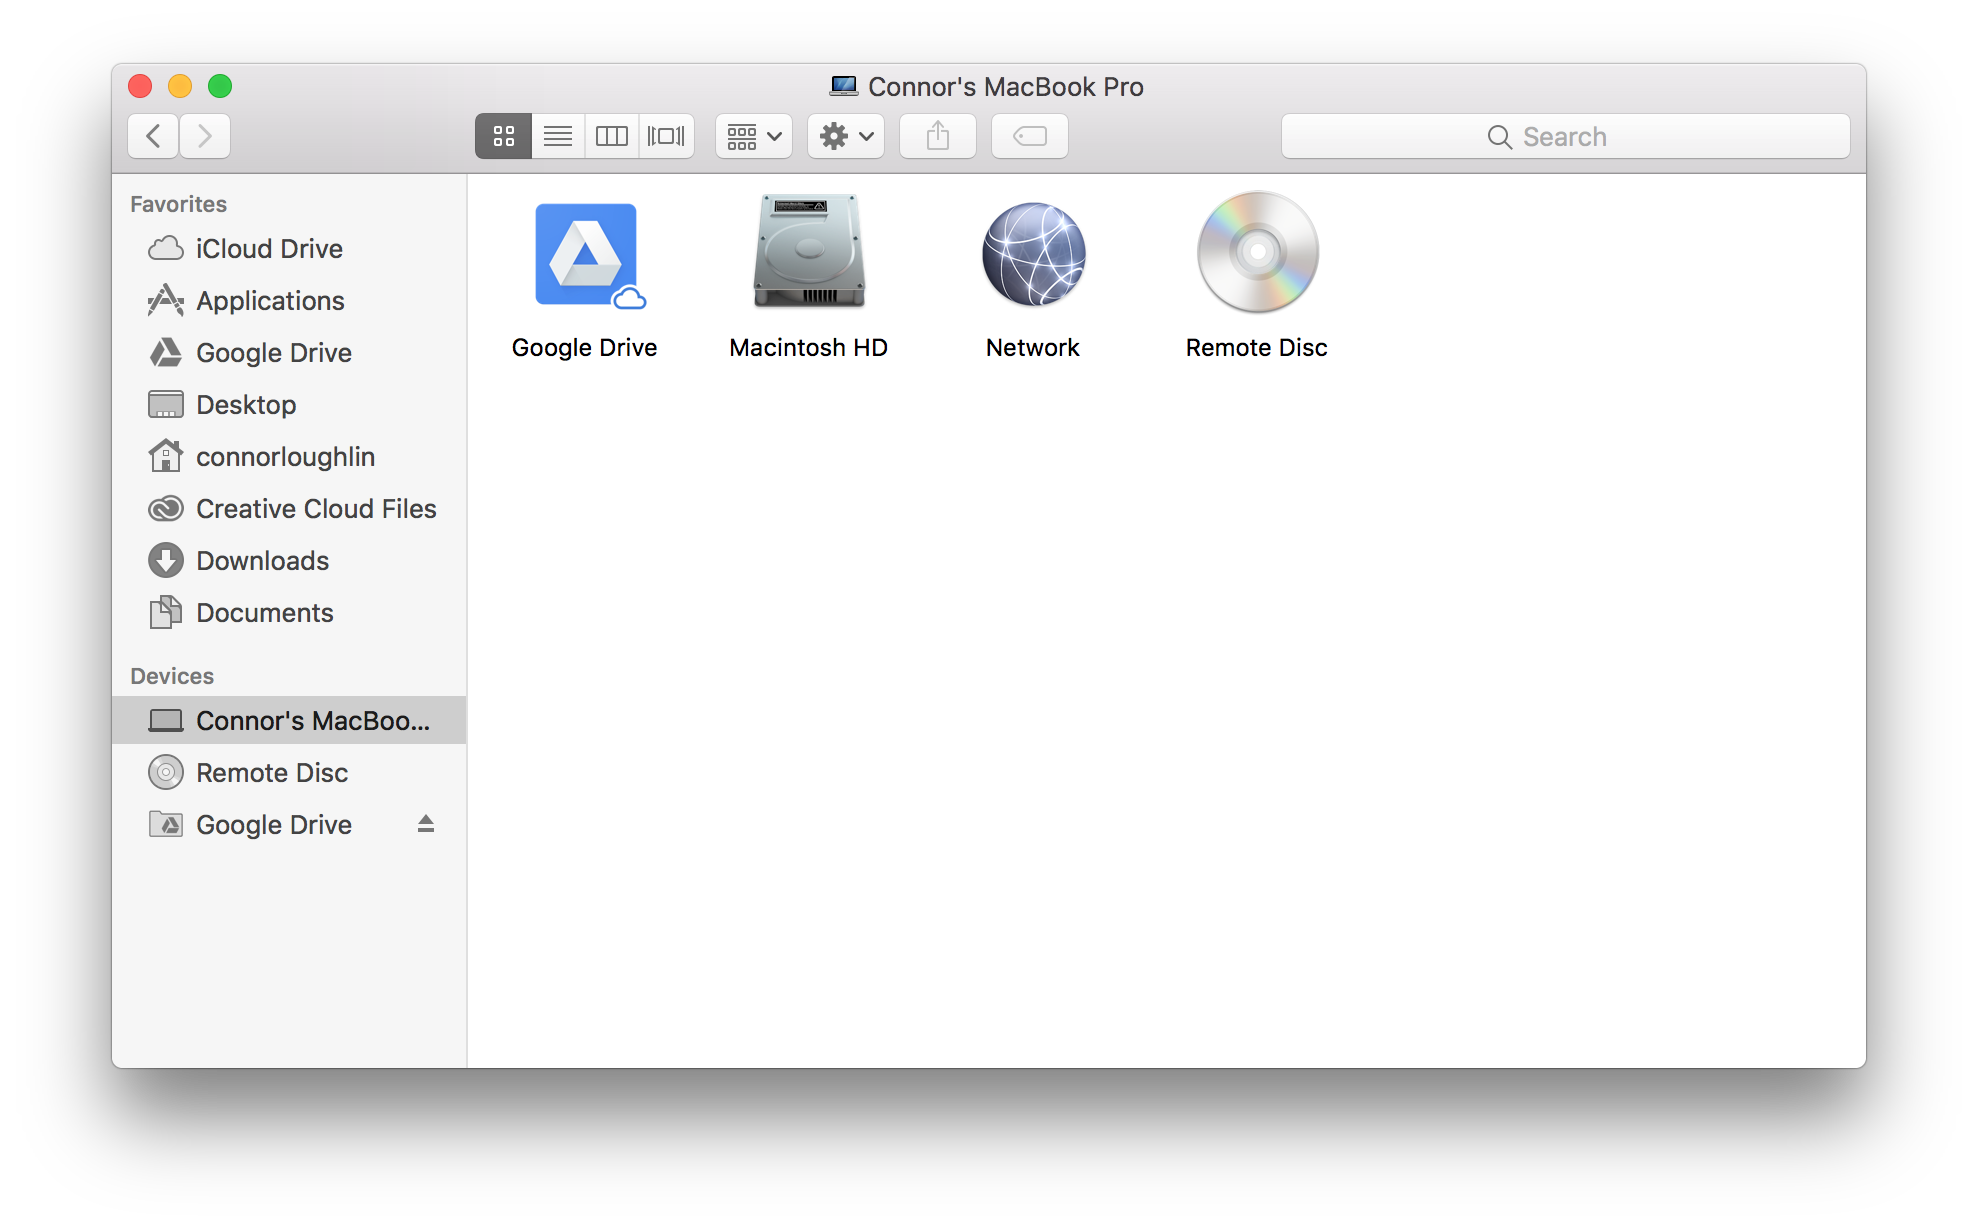 Screenshot from macOS showing Google Drive as a mounted device